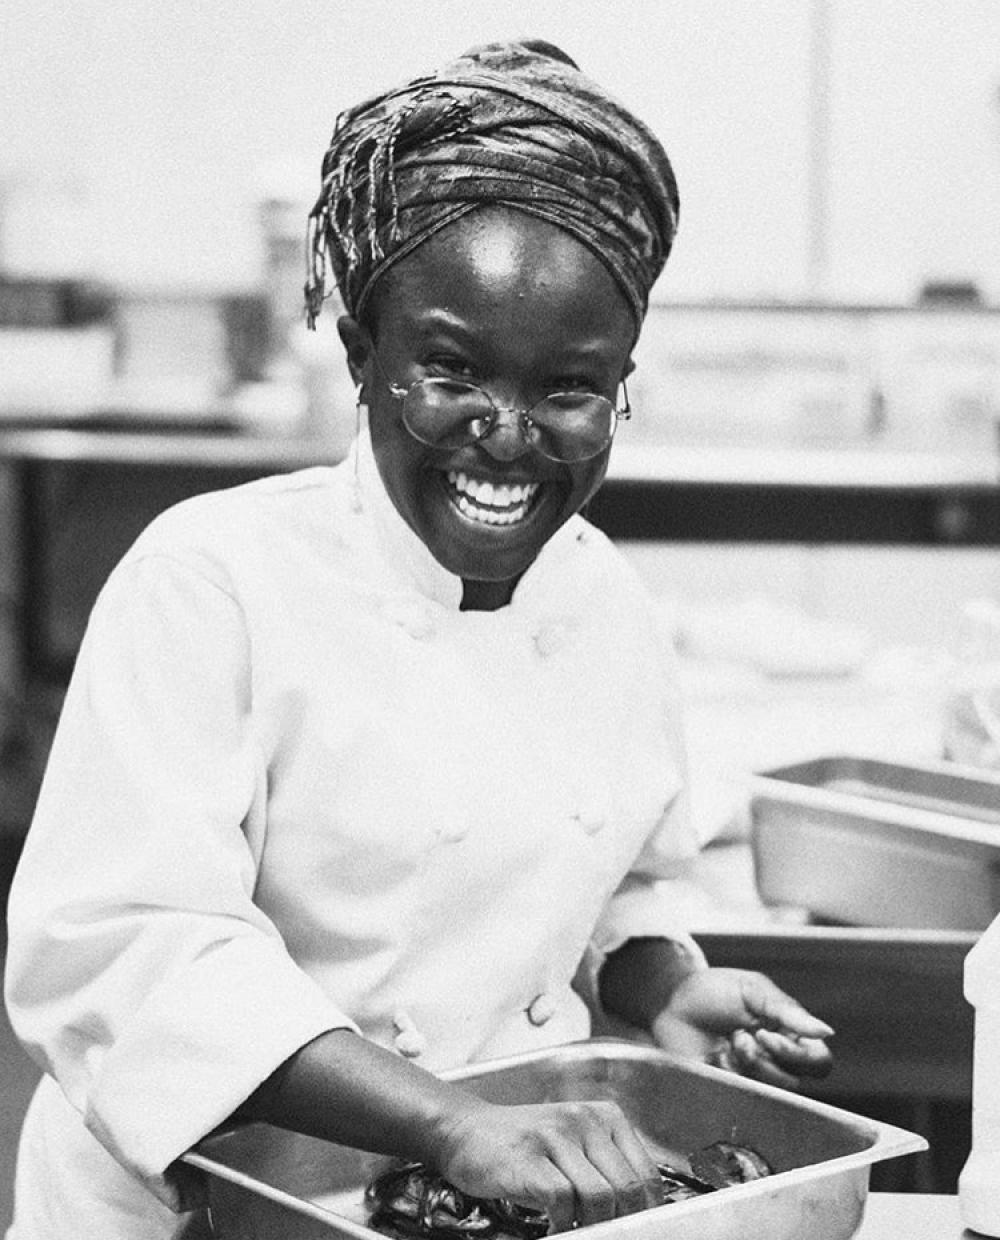 black and white portrait of smiling Black woman in chef's coat